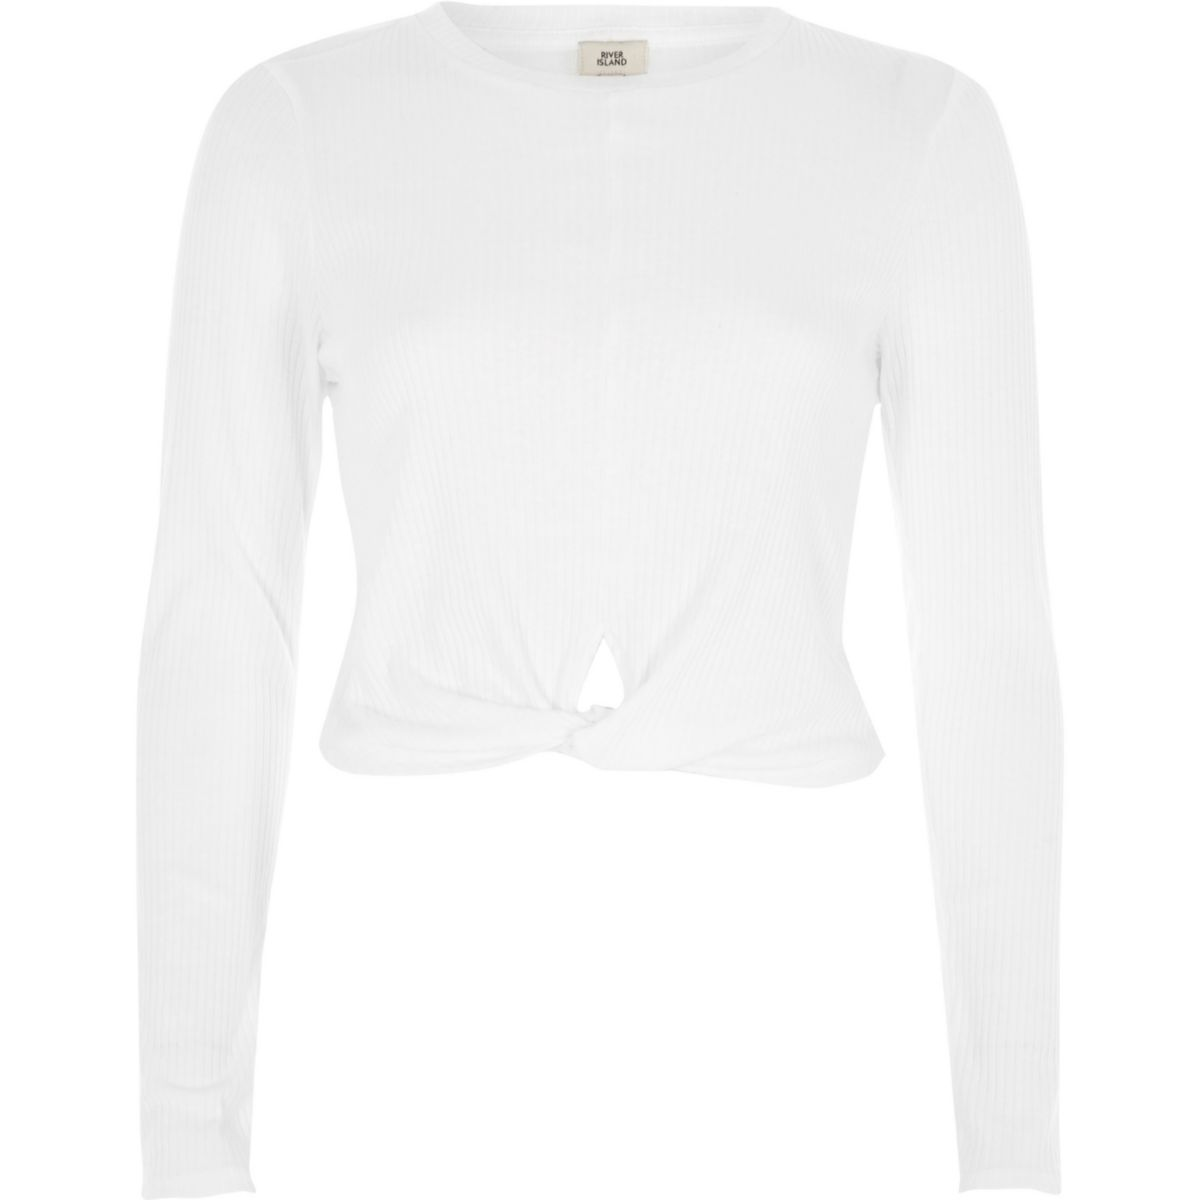 White twist front long sleeve crop top